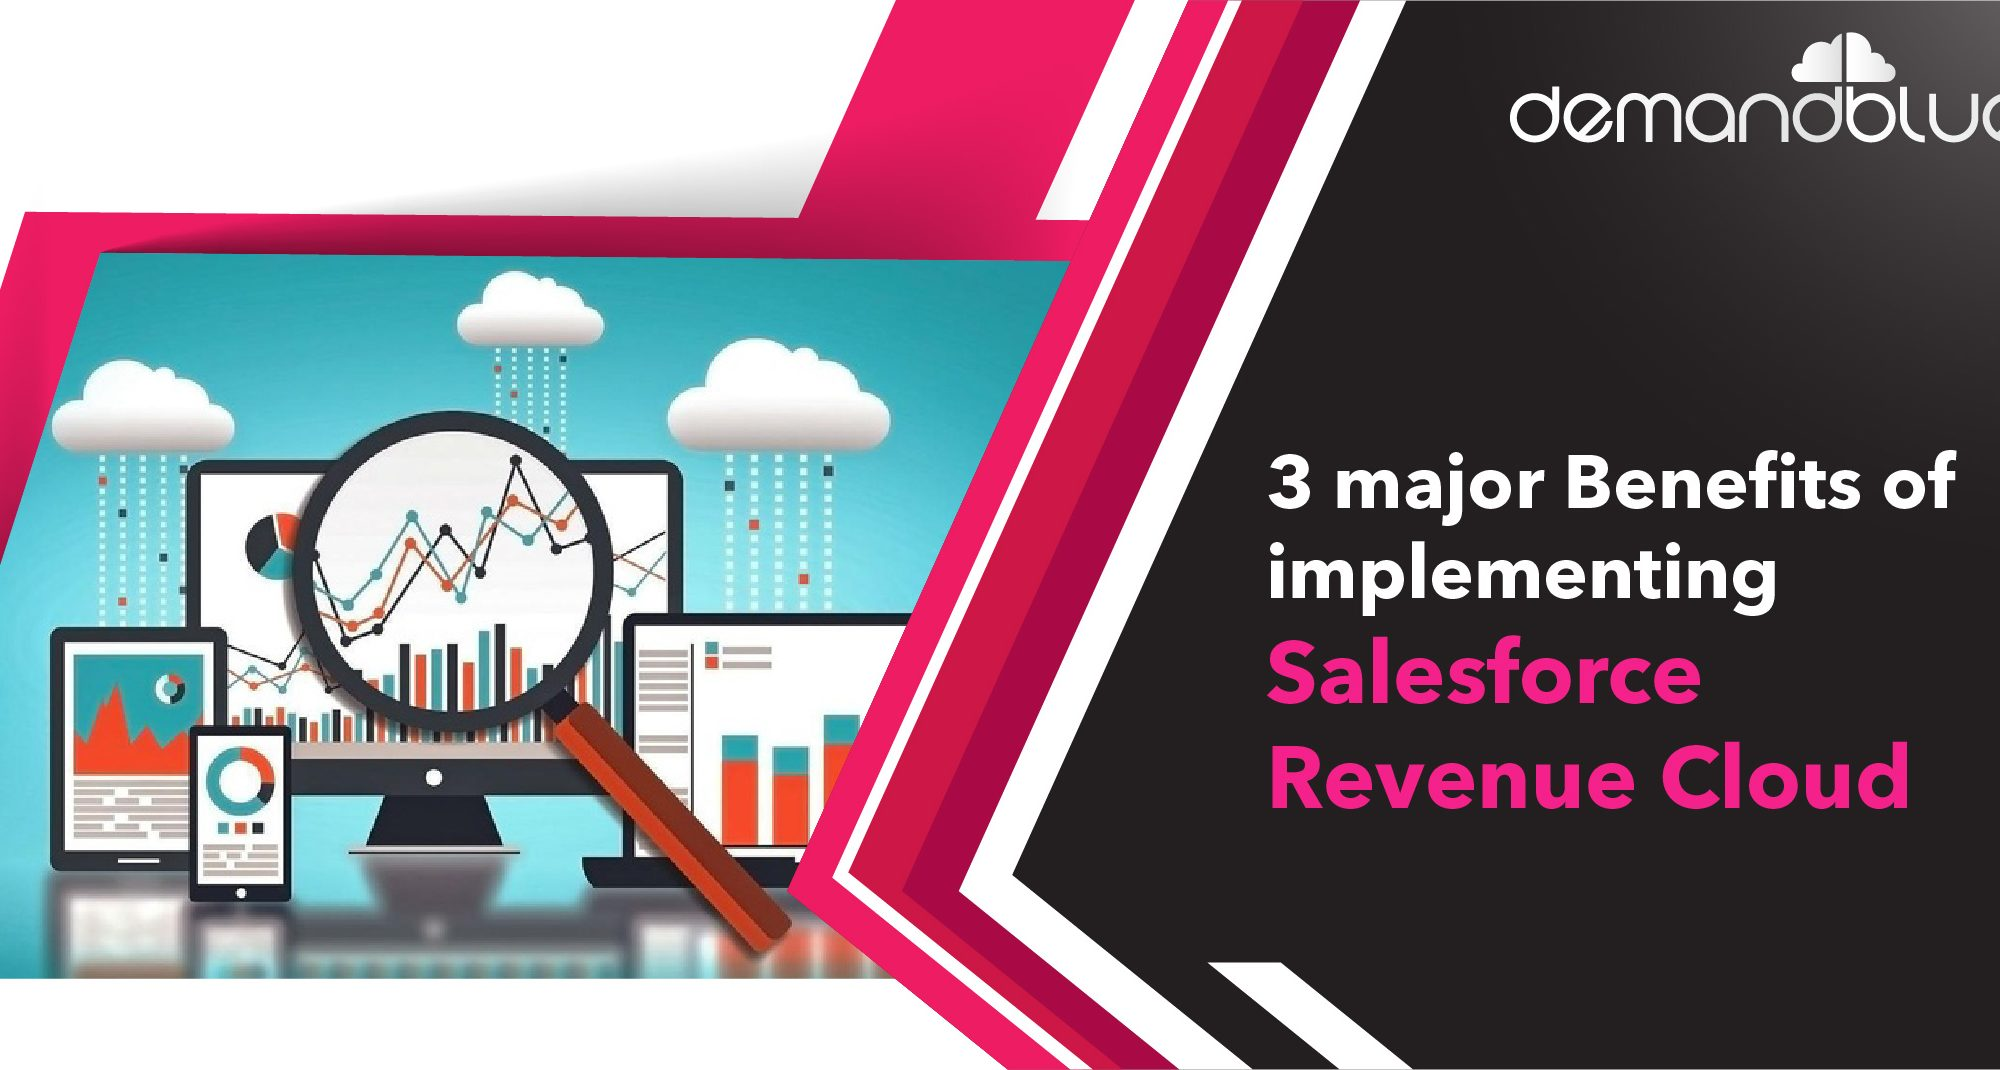 Implementing Salesforce Revenue Cloud